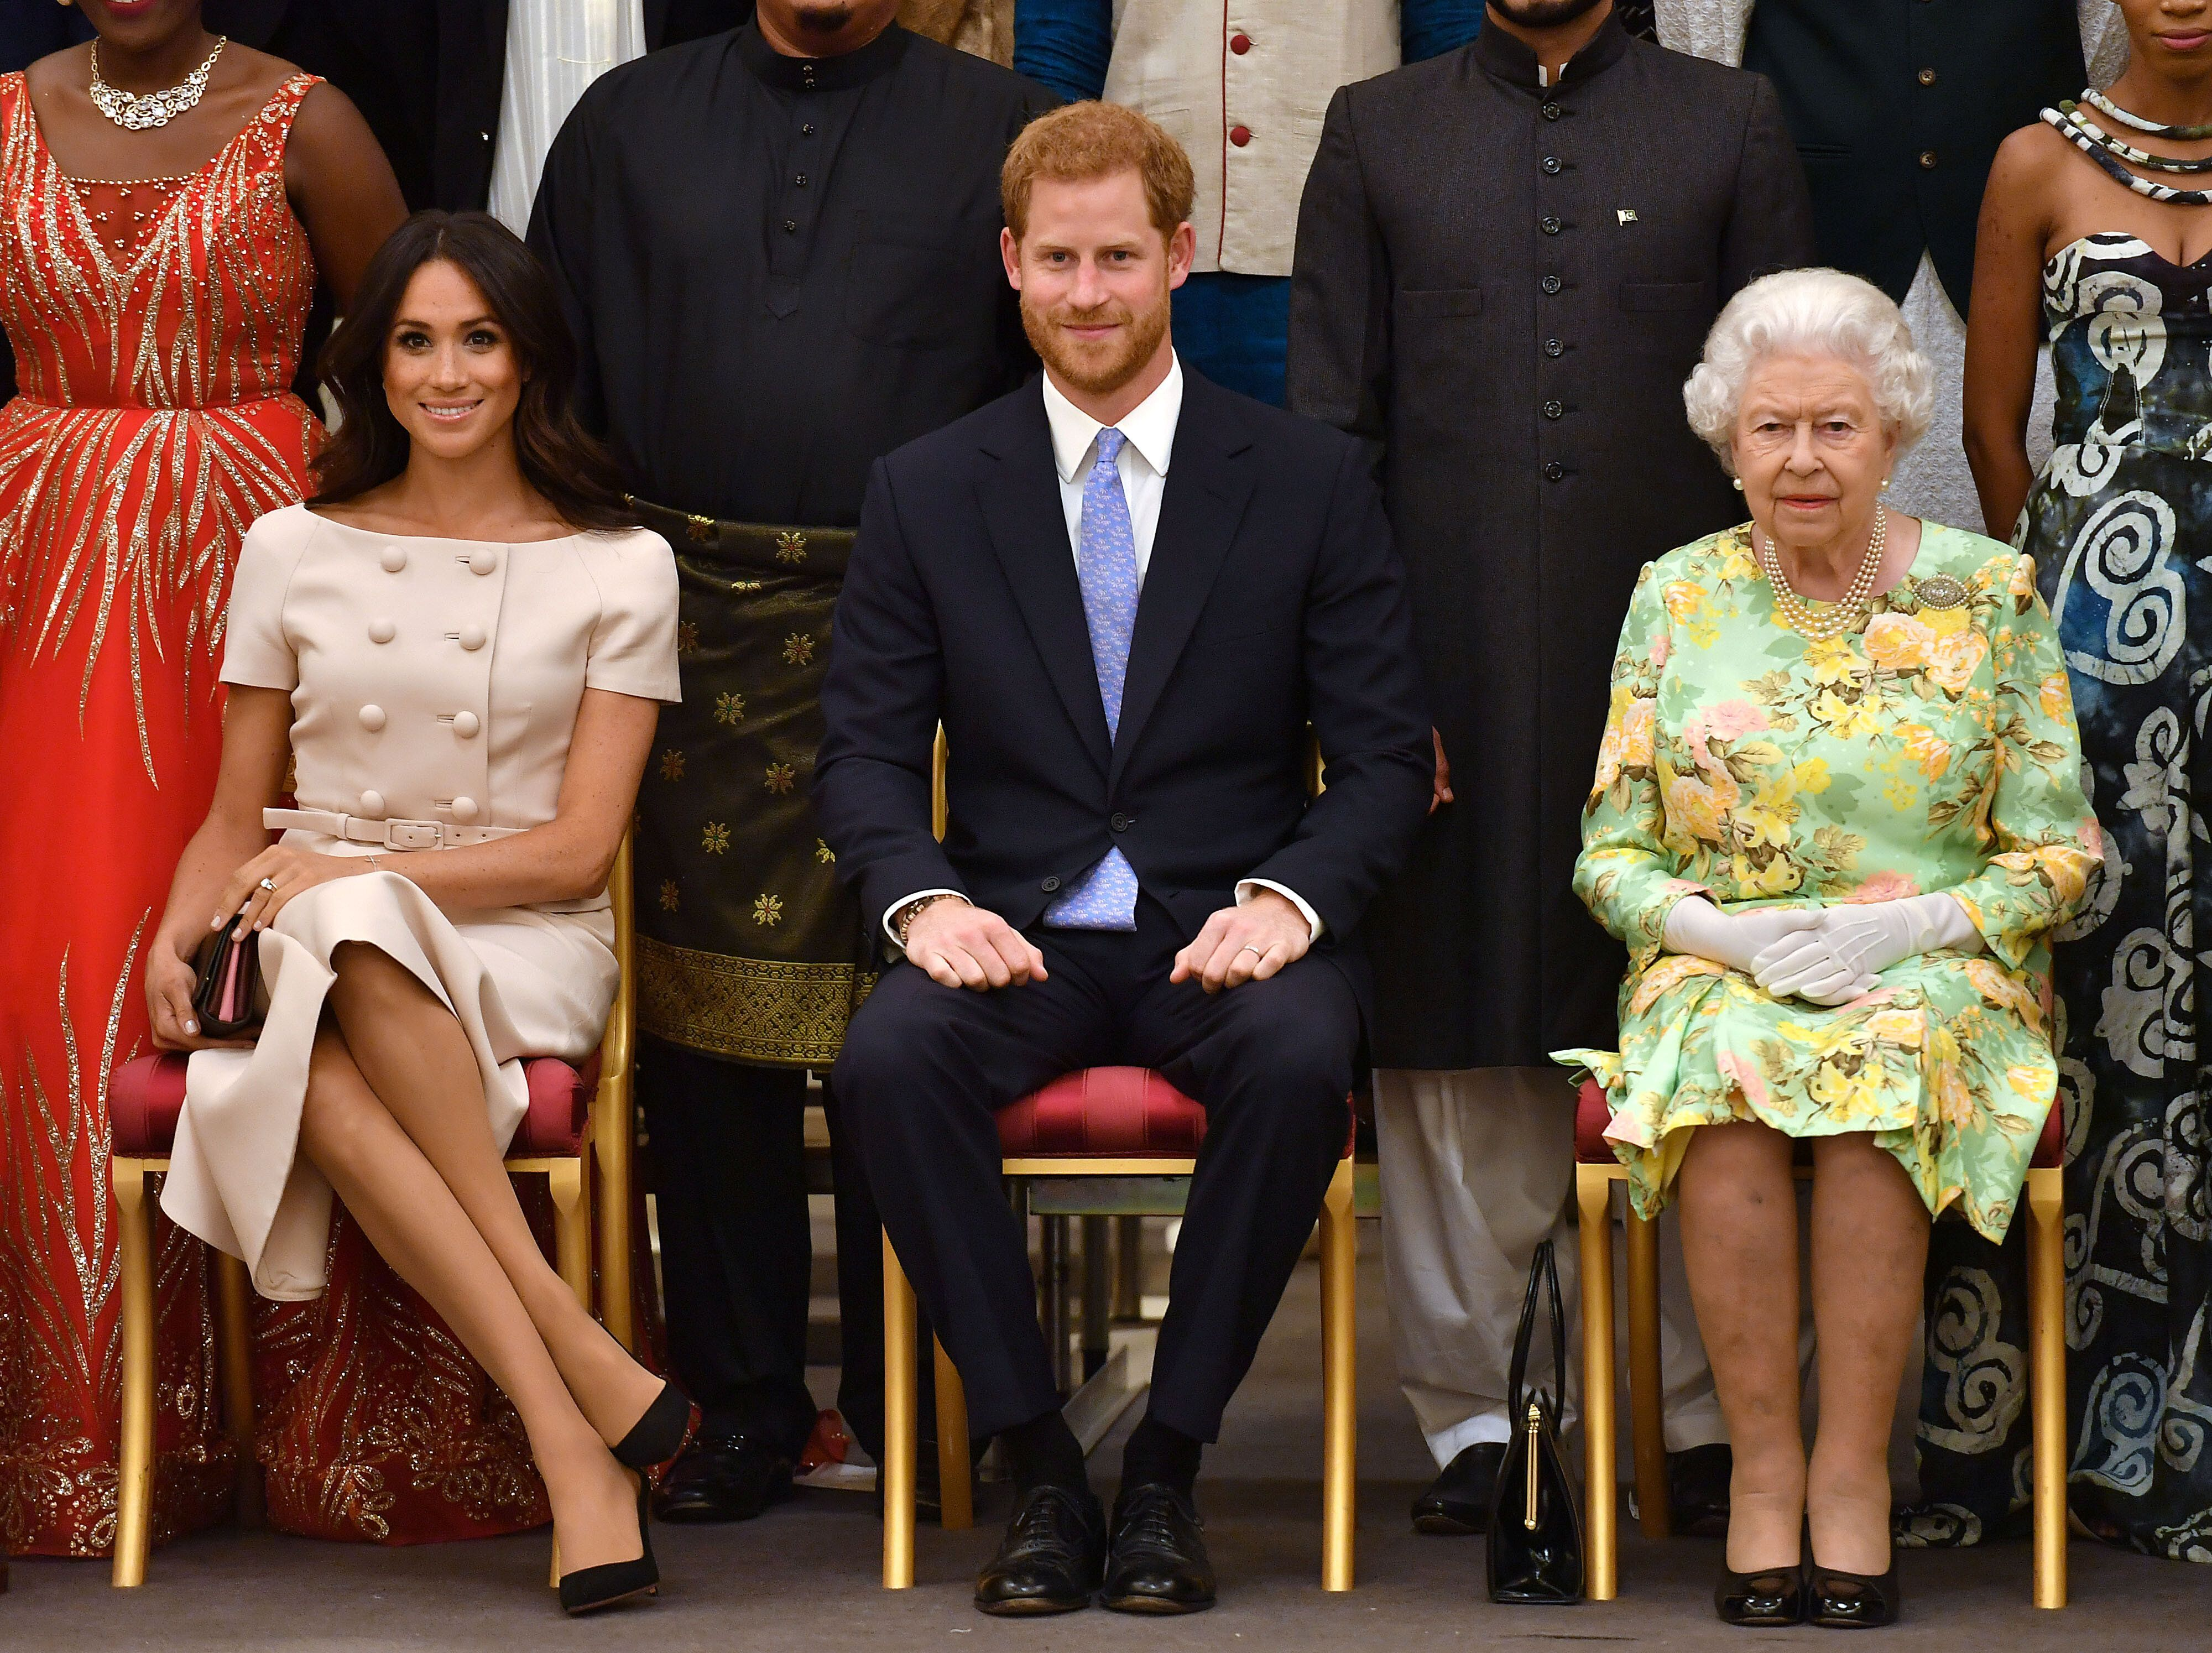 Queen Elizabeth, Prince Harry and the Duchess of Sussex pose for a picture with some of Queen's Young Leaders at a Buckingham